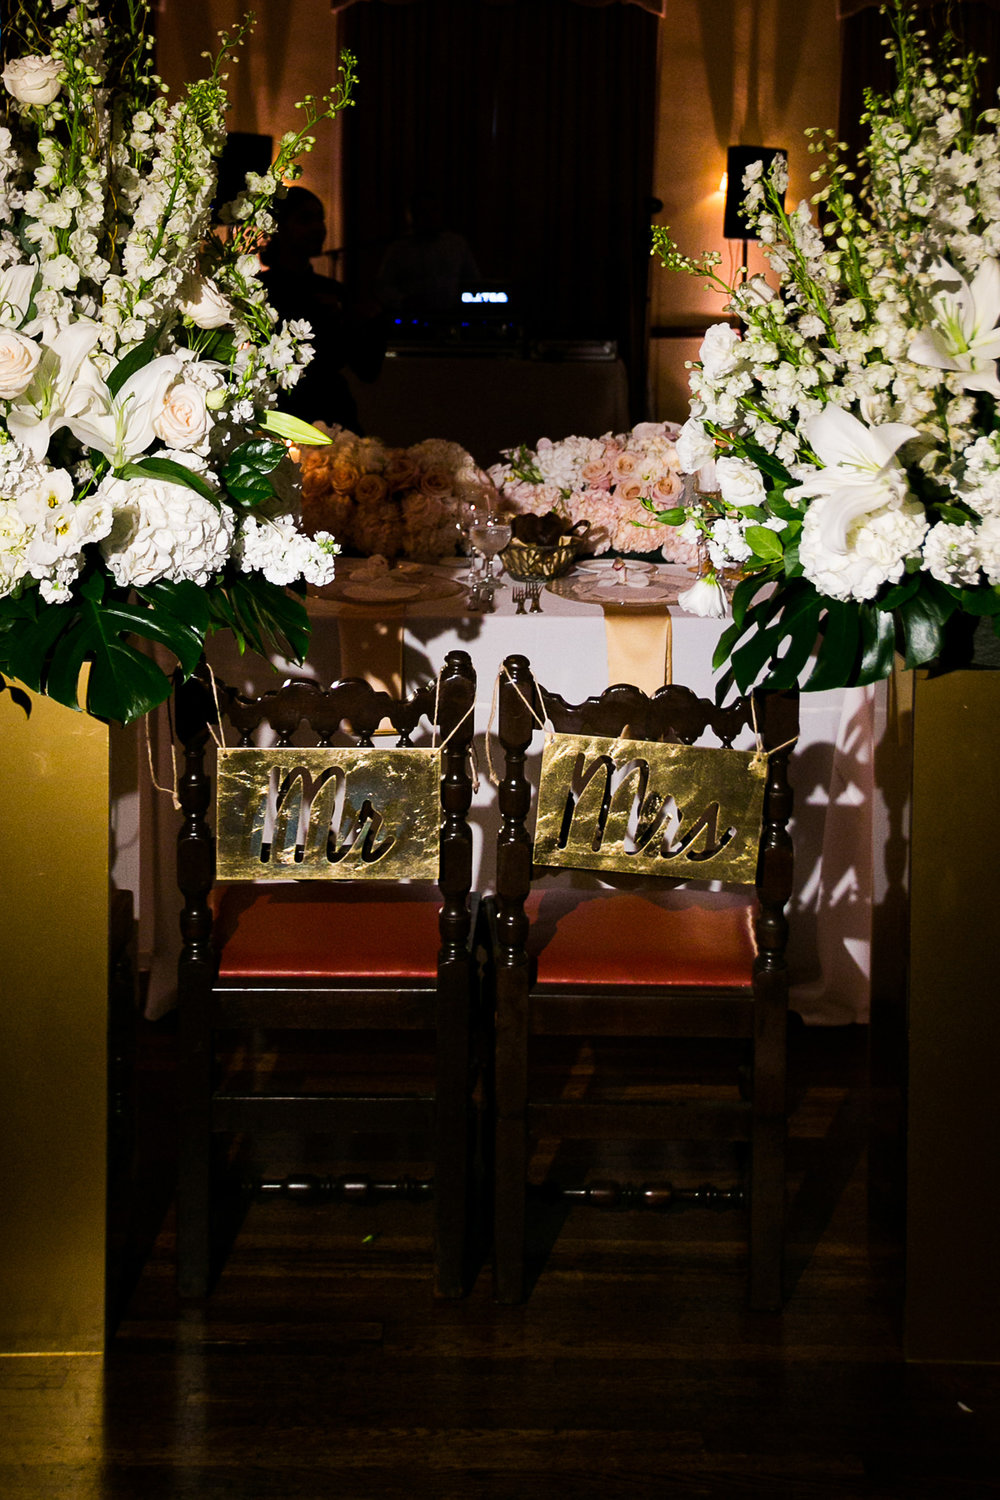 Dreamy Romantic Wedding at Historic Los Angeles Ebell Club mr and mrs signs on chairs.jpg